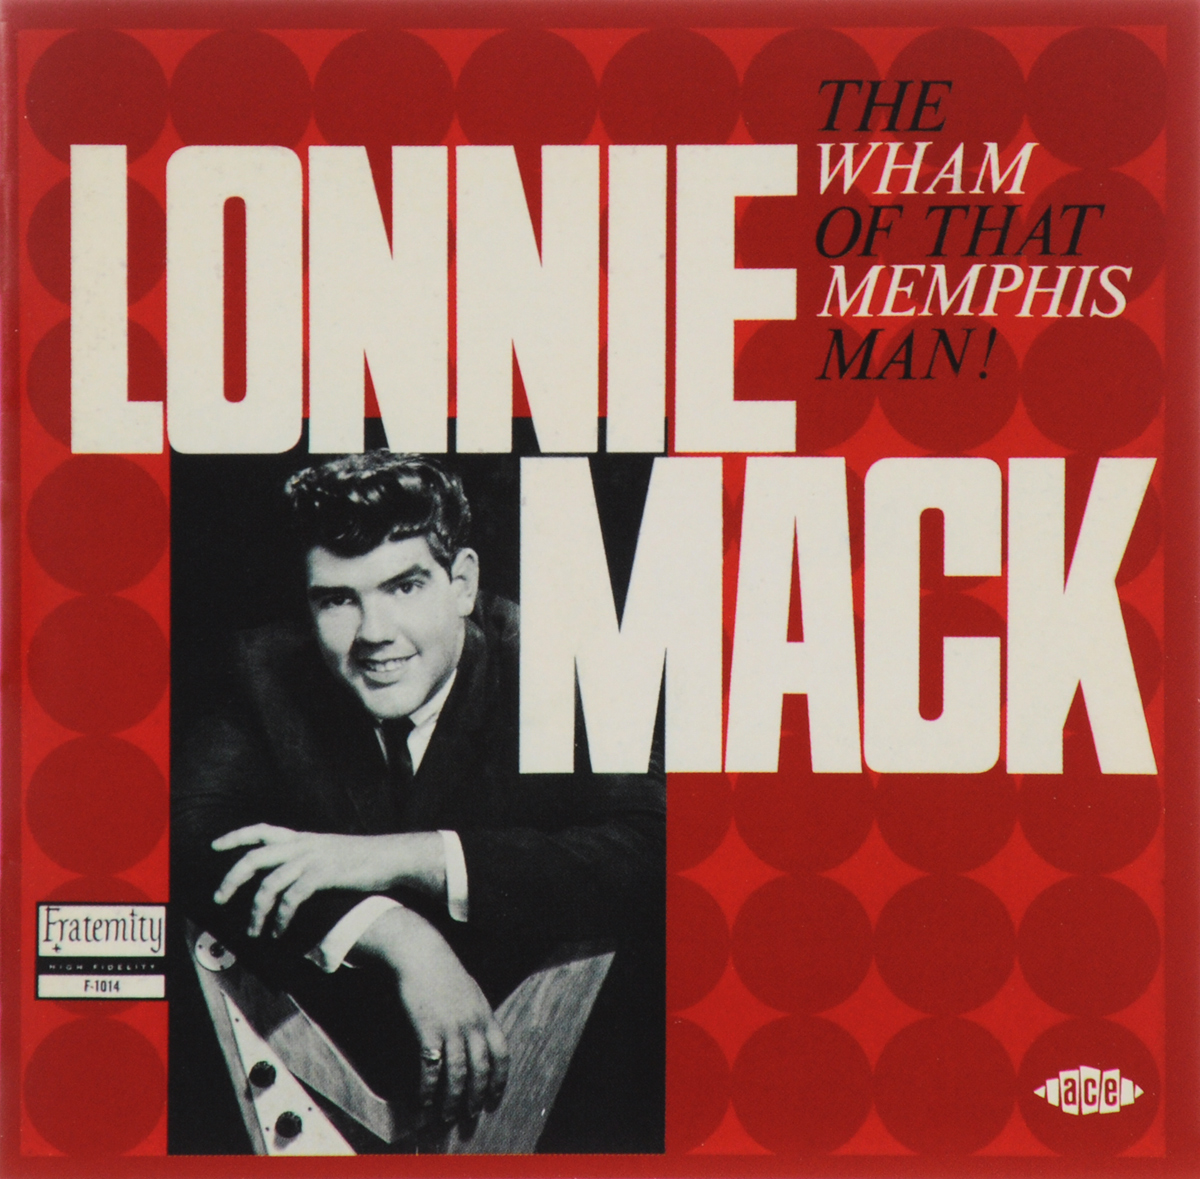 Lonnie Mack. The Wham Of That Memphis Man!